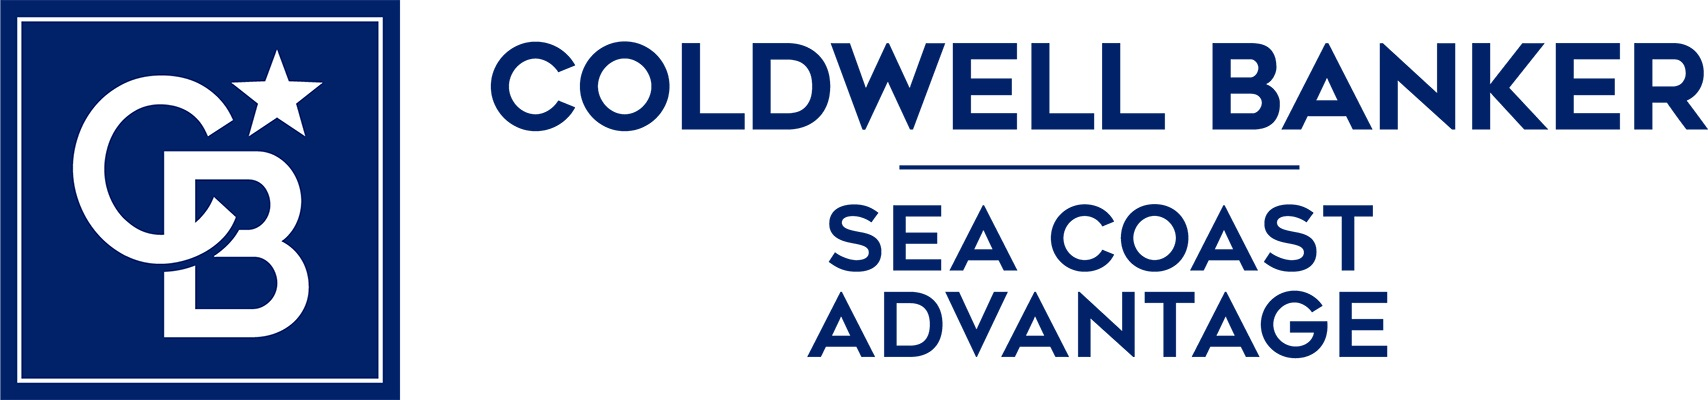 Tom Paul - Coldwell Banker Sea Coast Advantage Realty